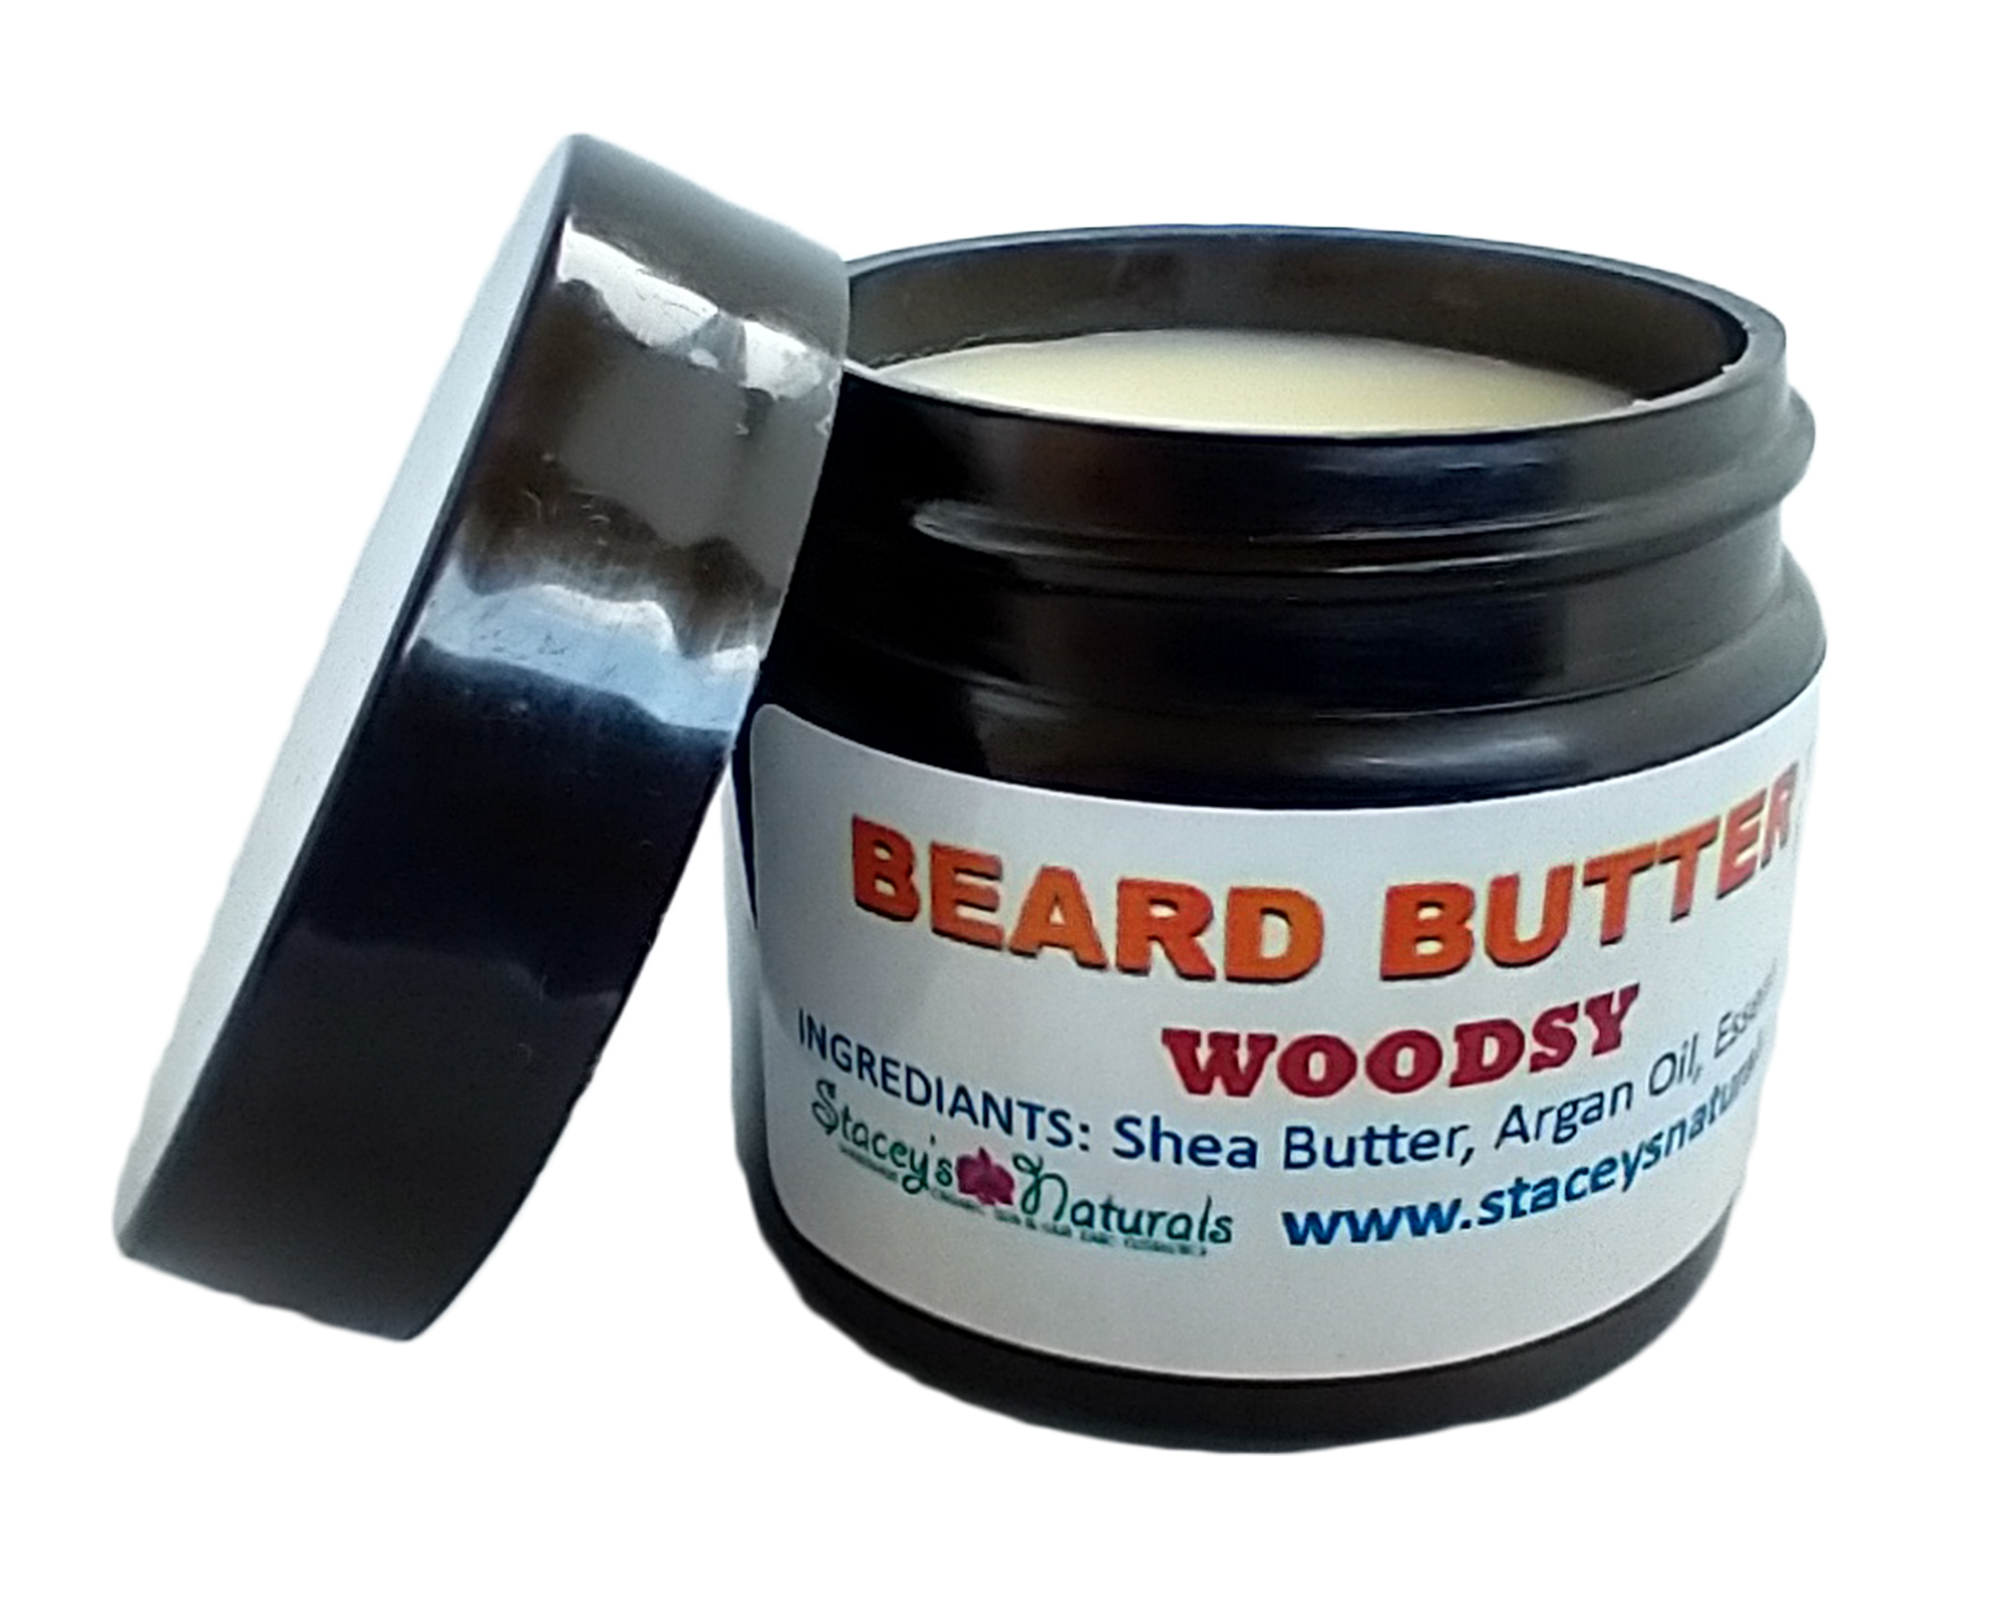 Take care of your beard using this balm to make it soft, heallthy and tidy.